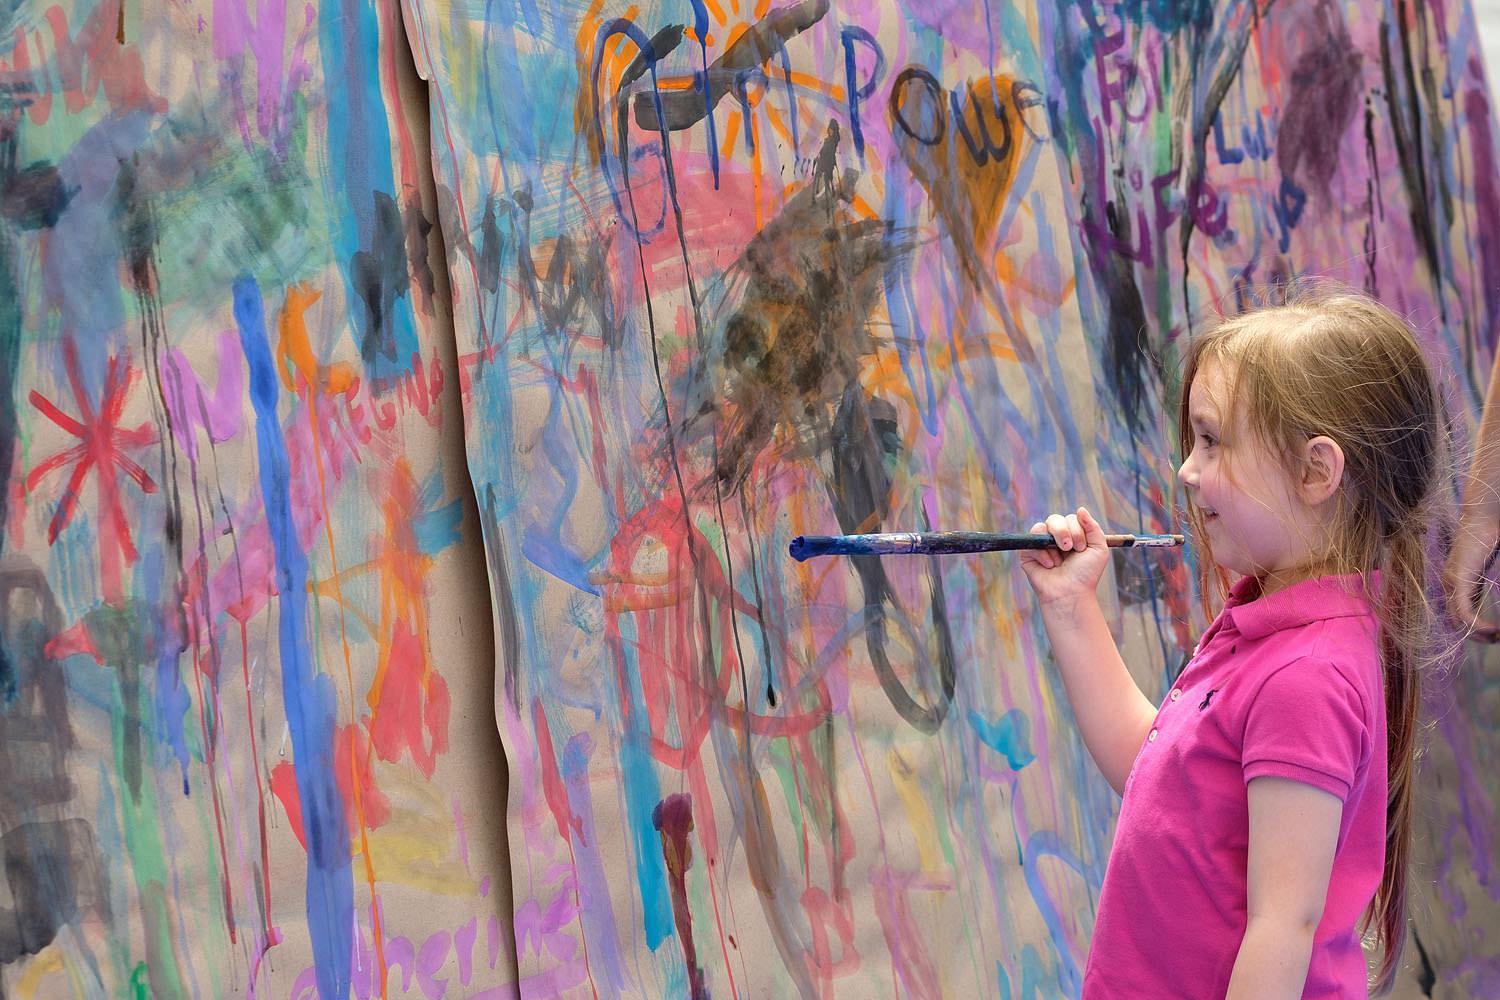 Children's activities at the Northern Virginia Fine Arts Festival